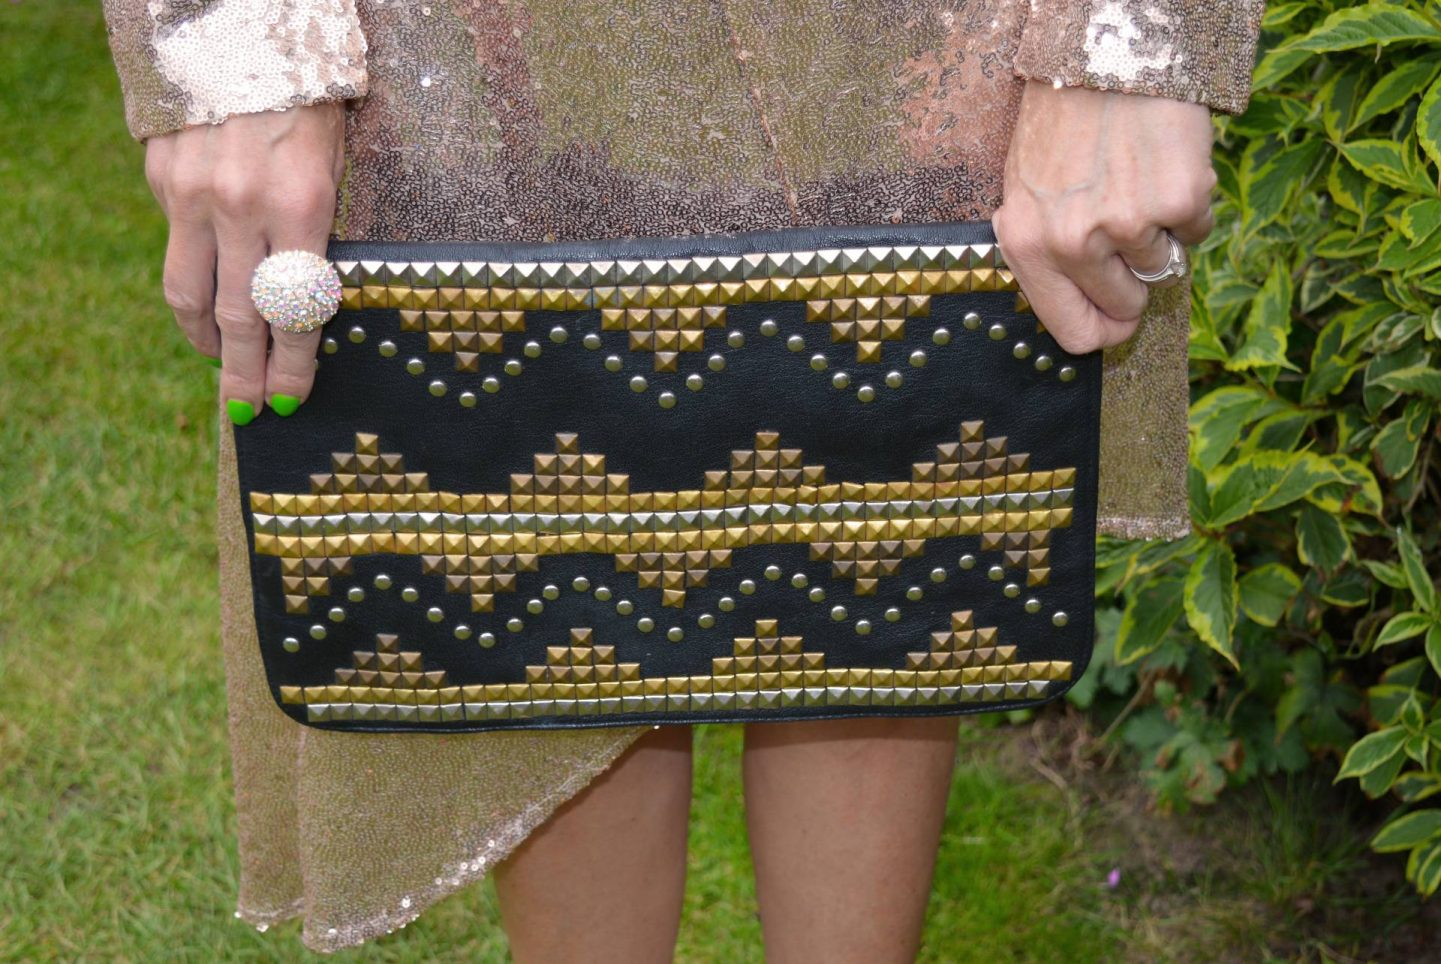 Fool's Gold - August's Thrifty Six, Asos black studded clutch